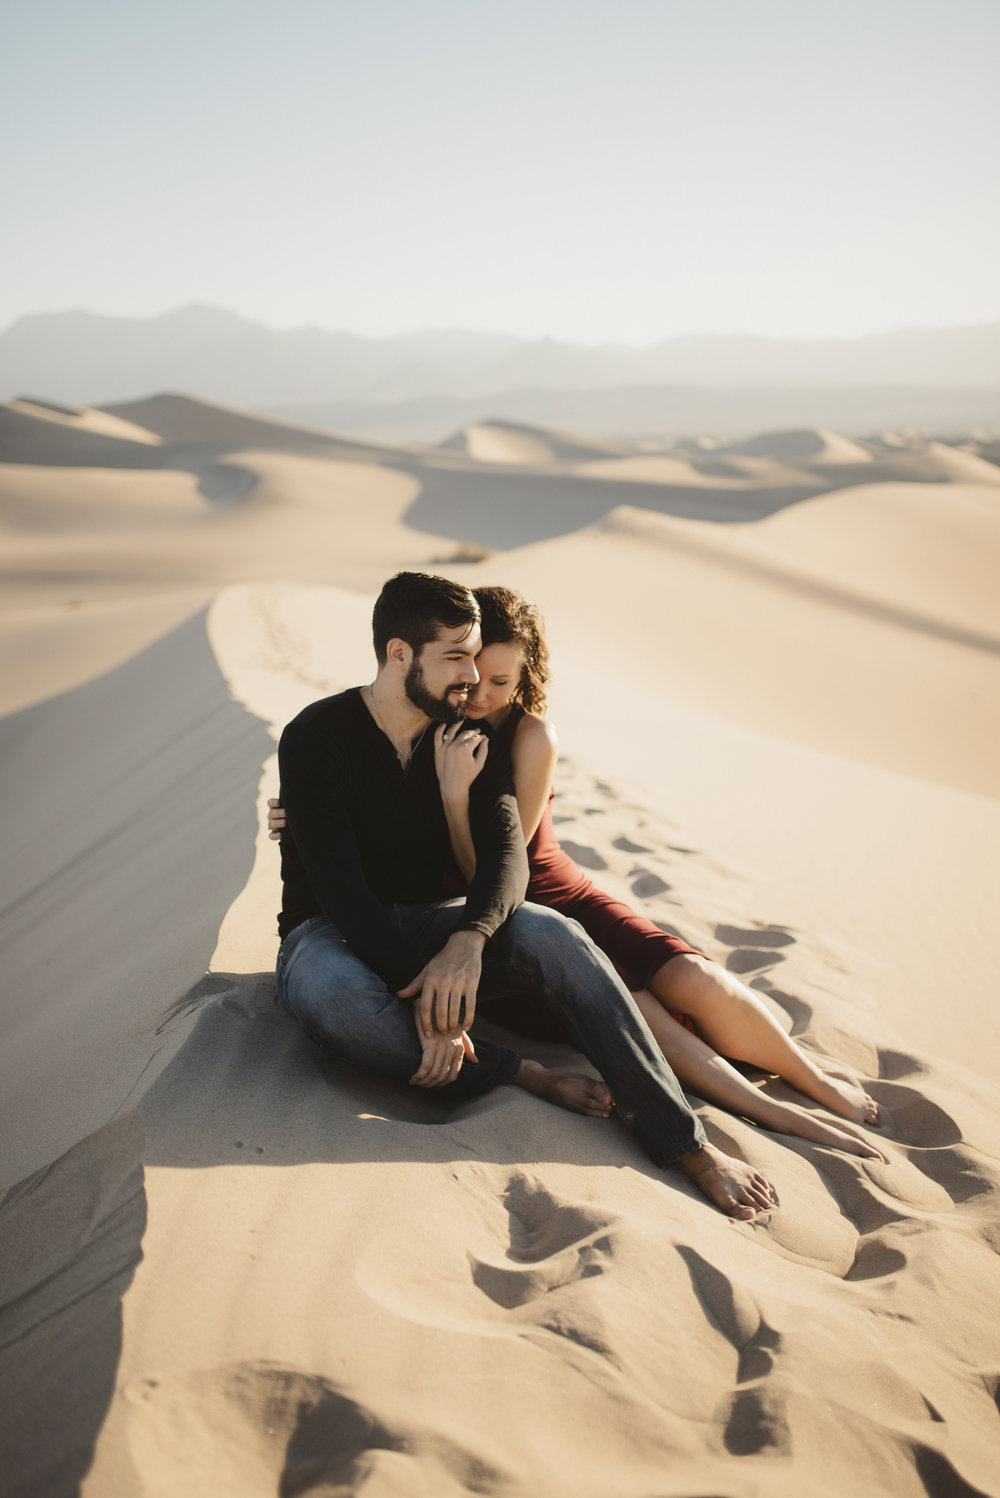 Death Valley California Desert Adventure Engagement Photographer174.jpg